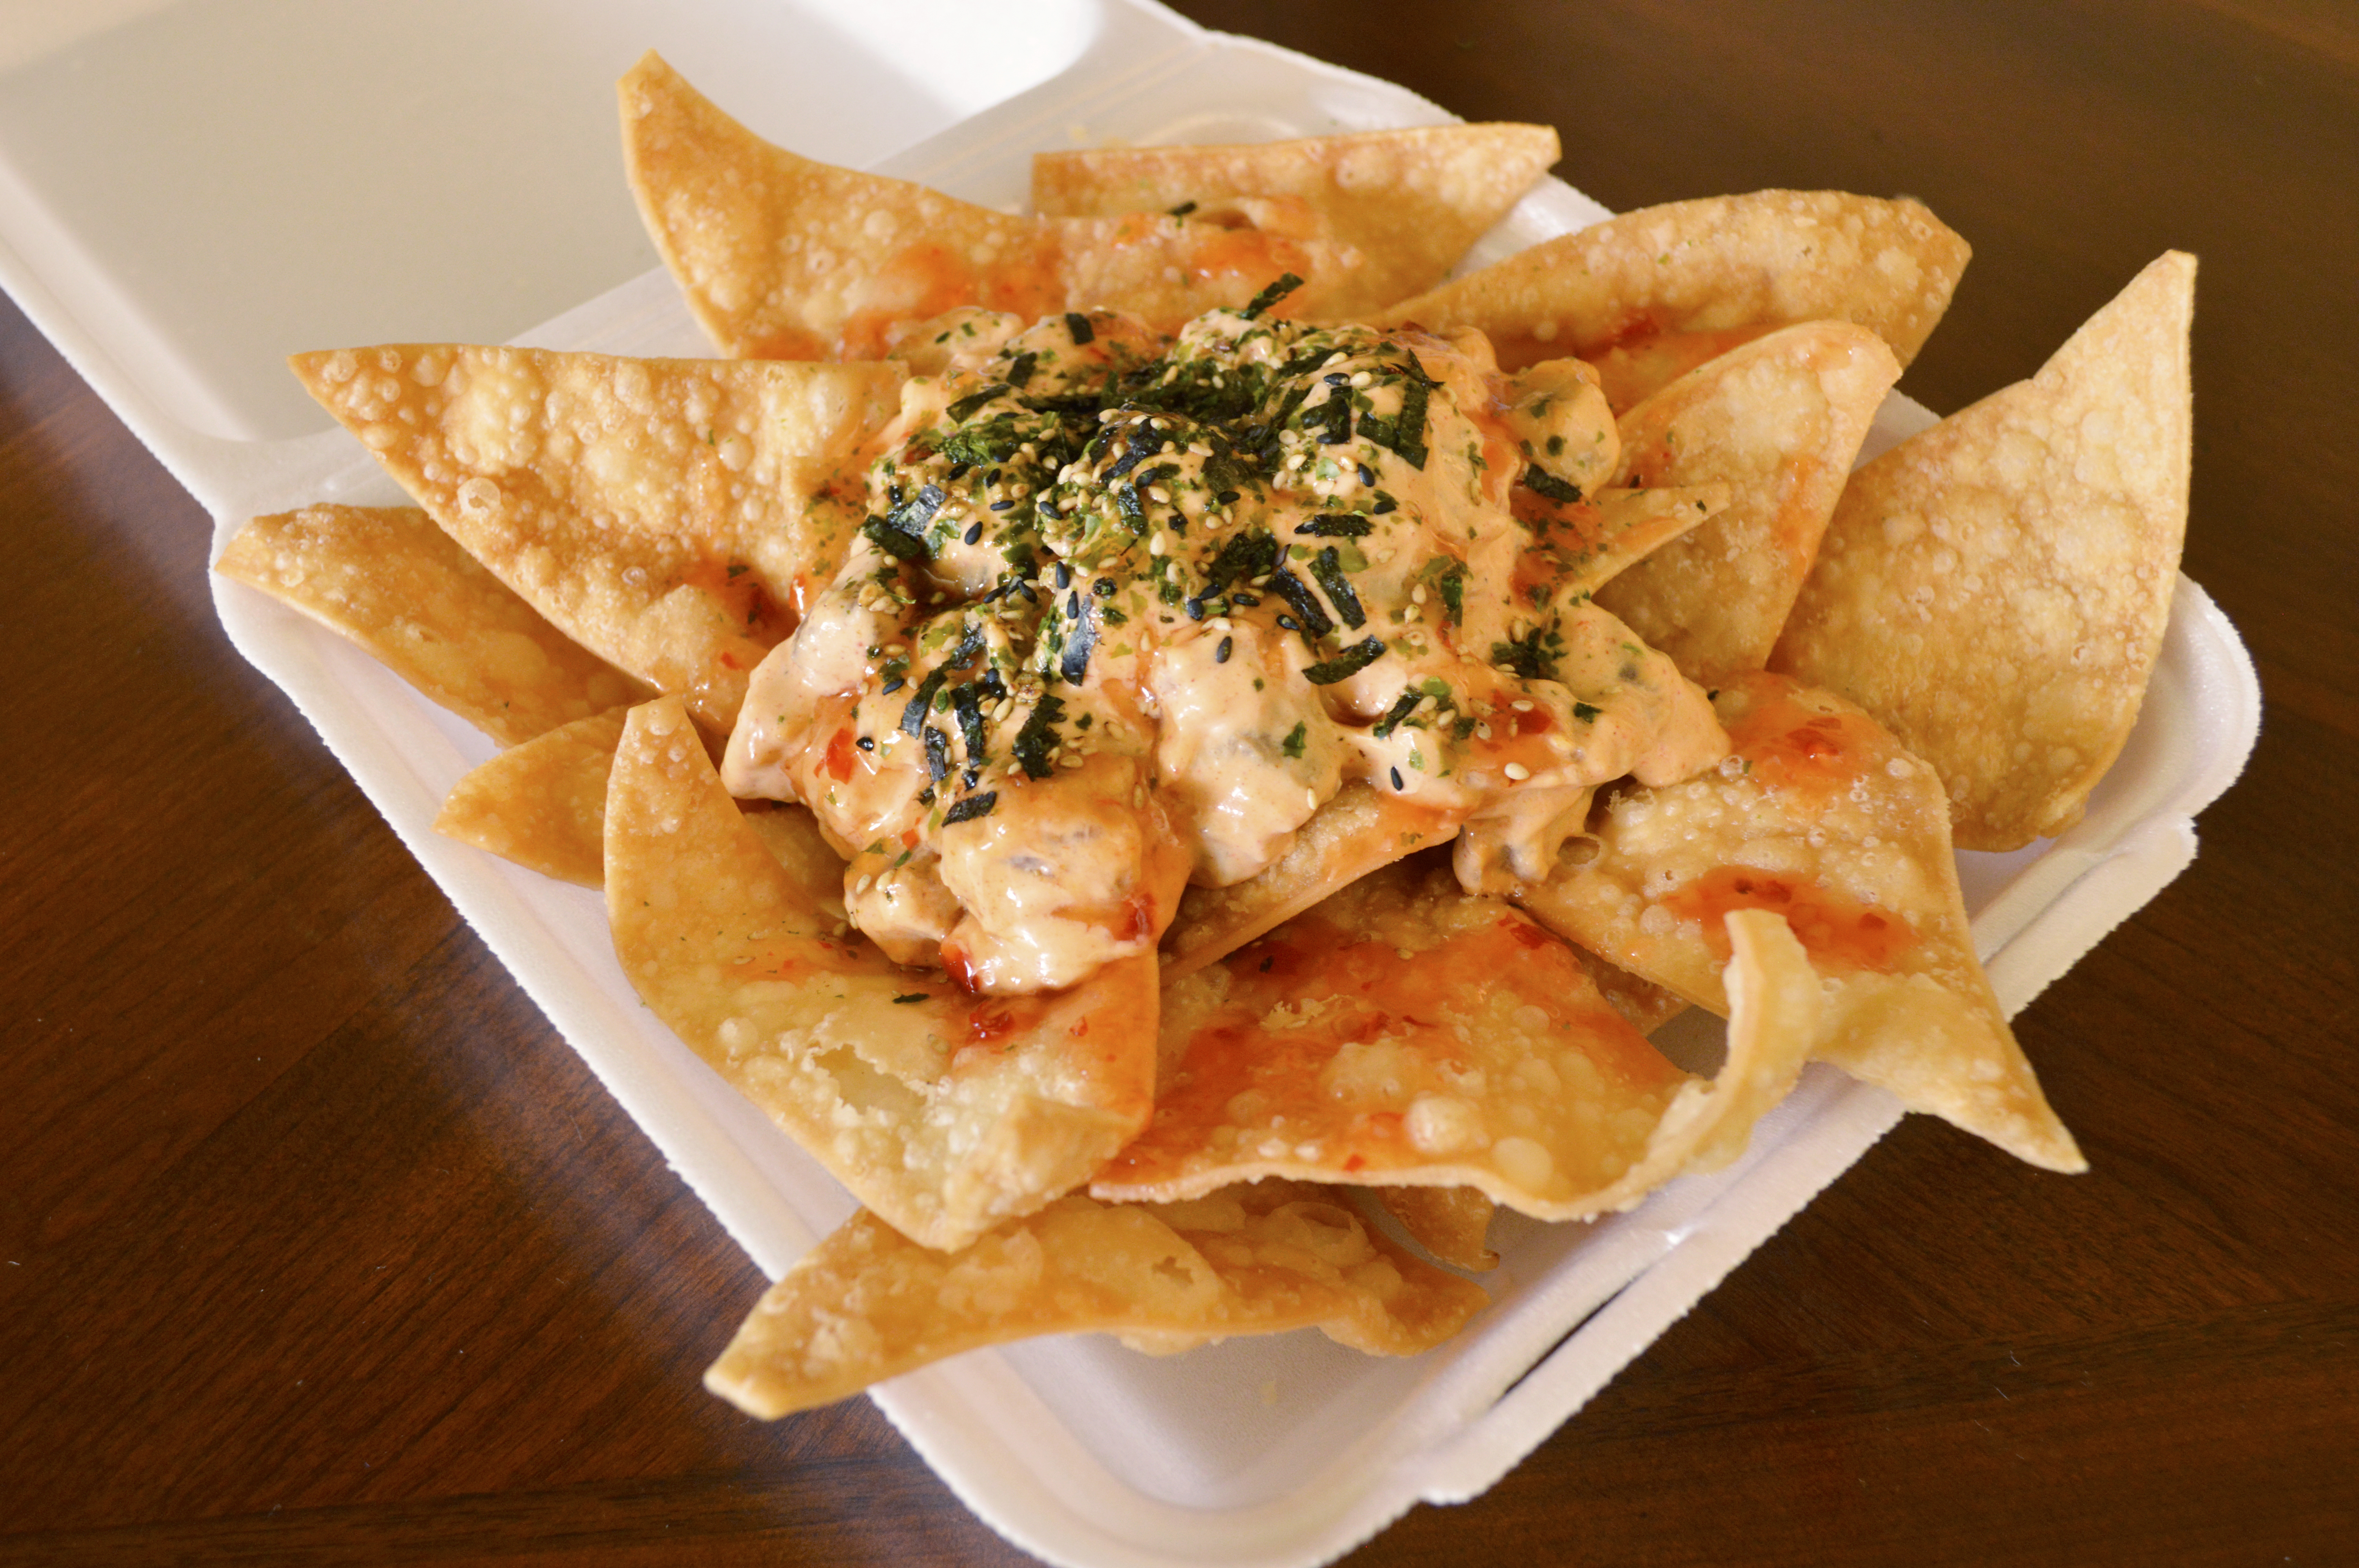 Home of the Original Poke Nacho